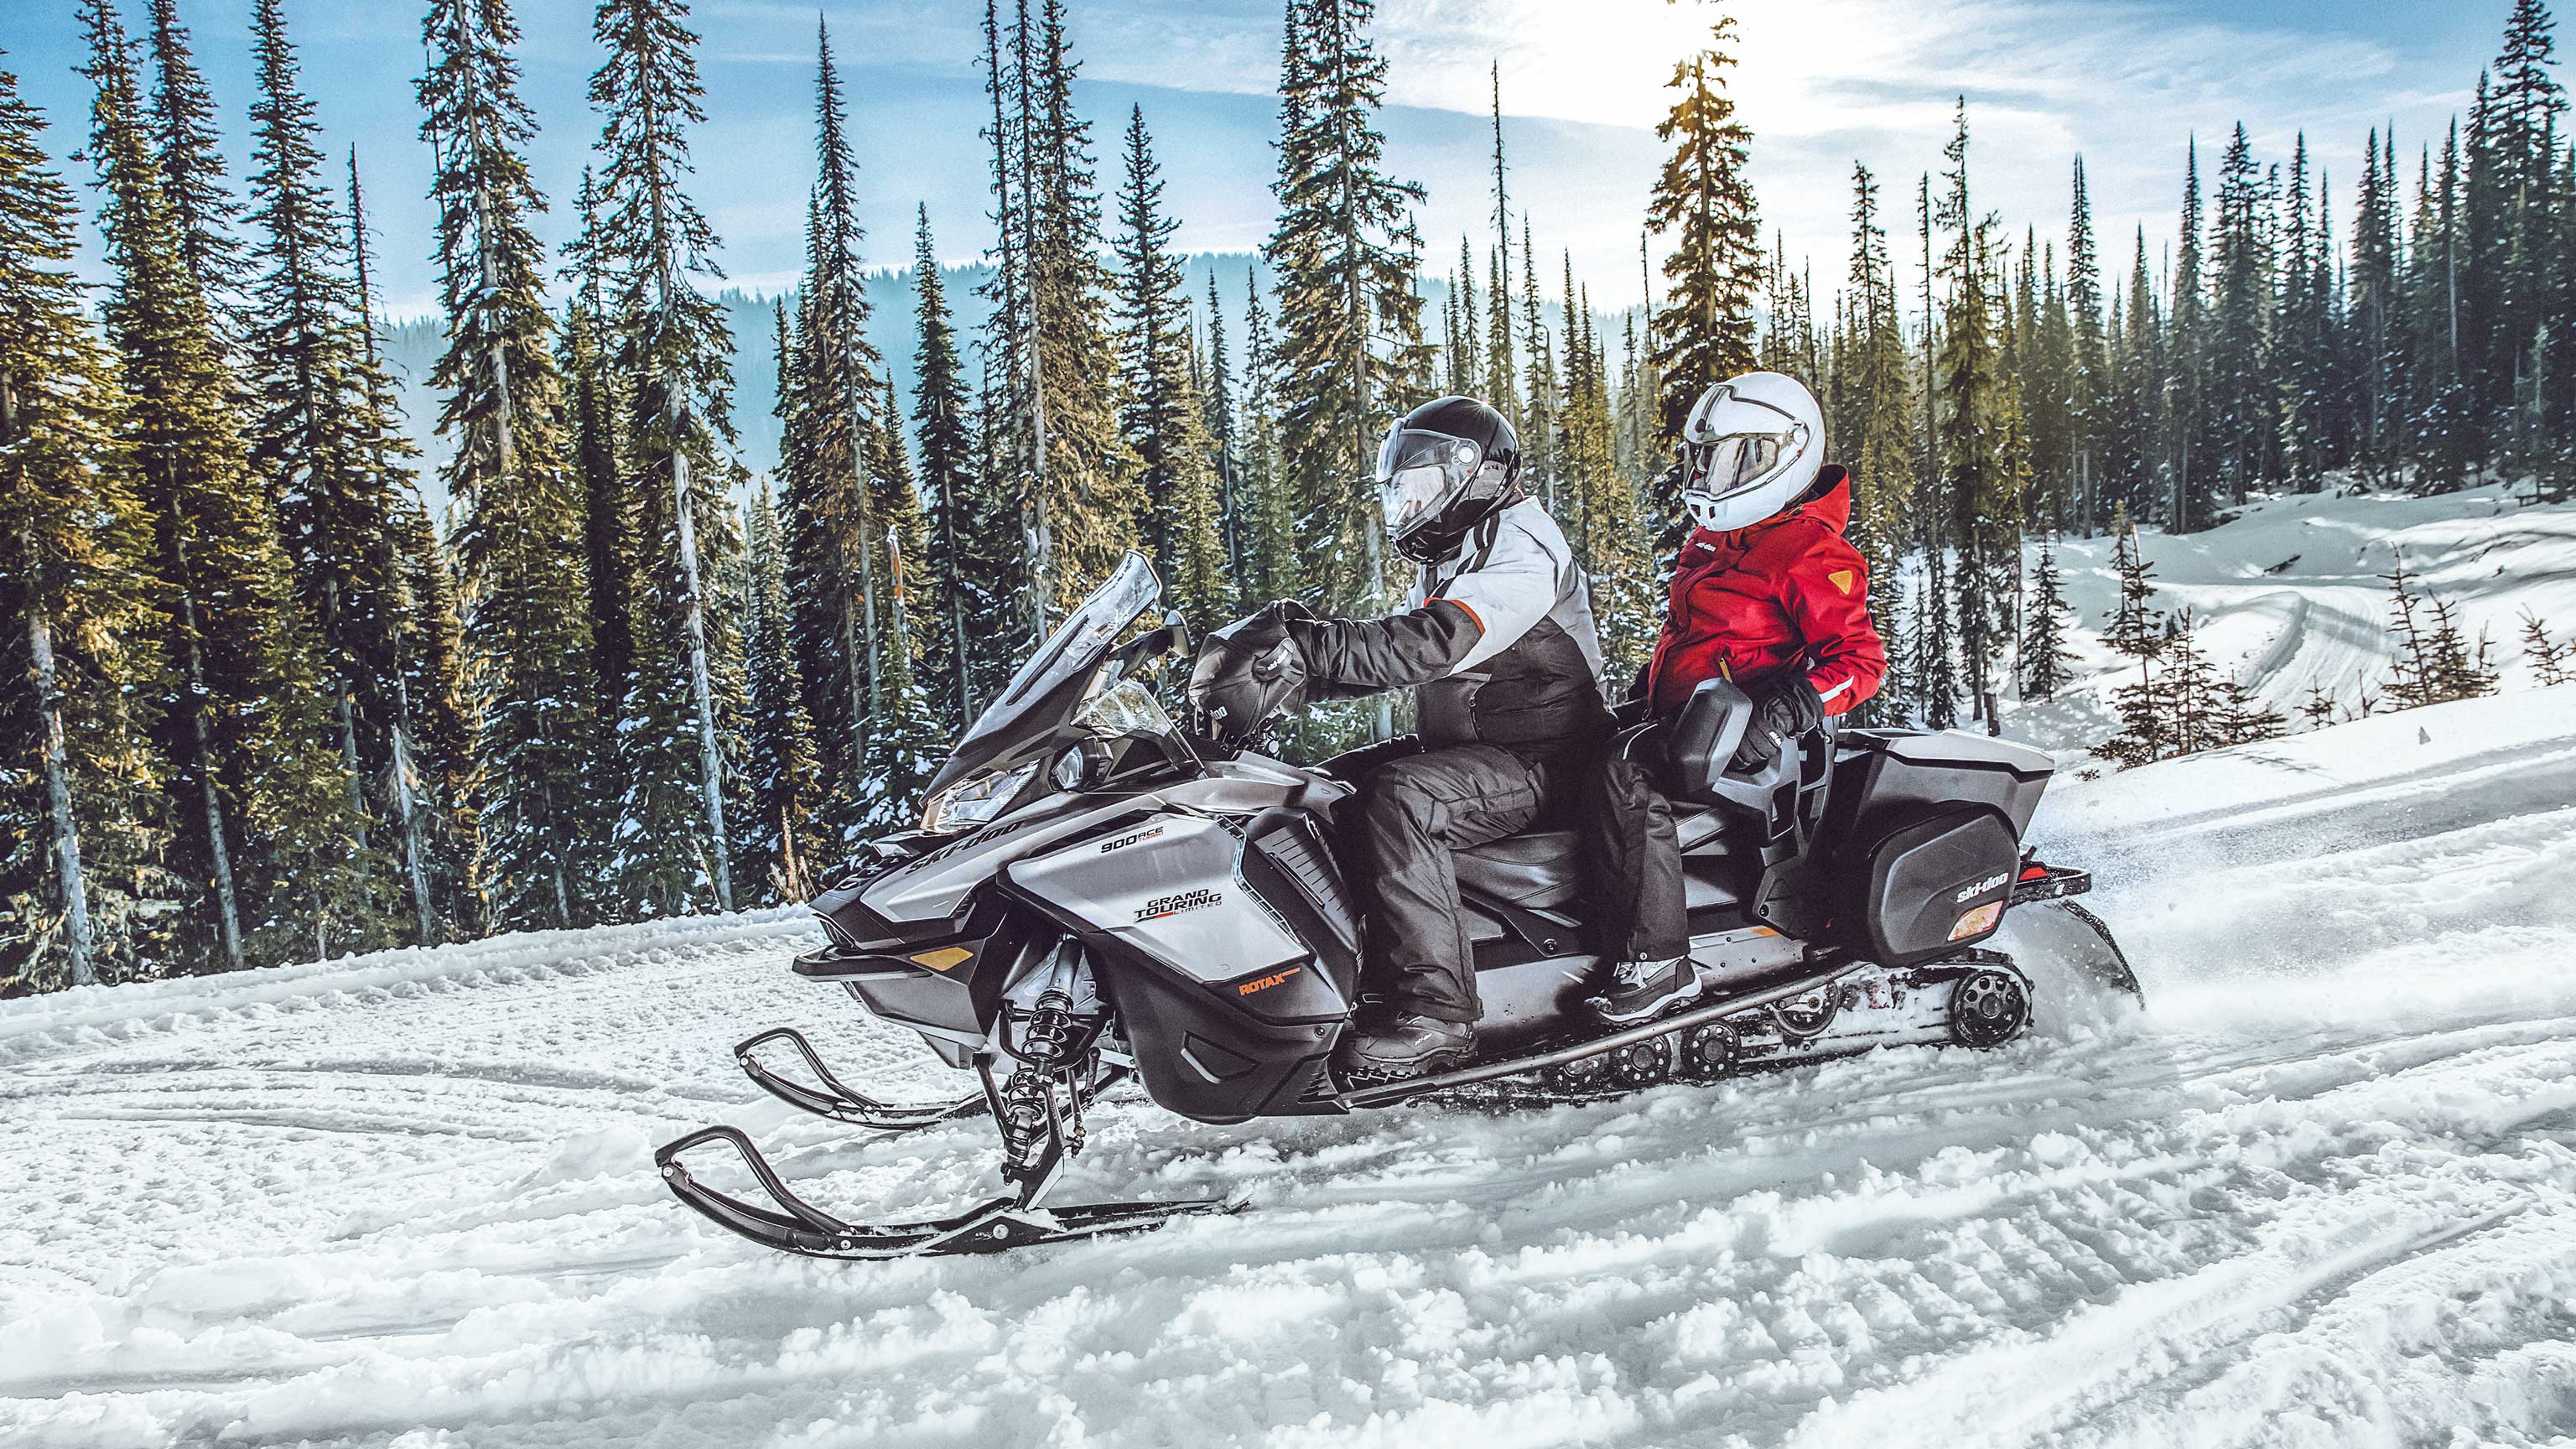 Couple riding 2022 Ski-Doo grand Touring snowmobile